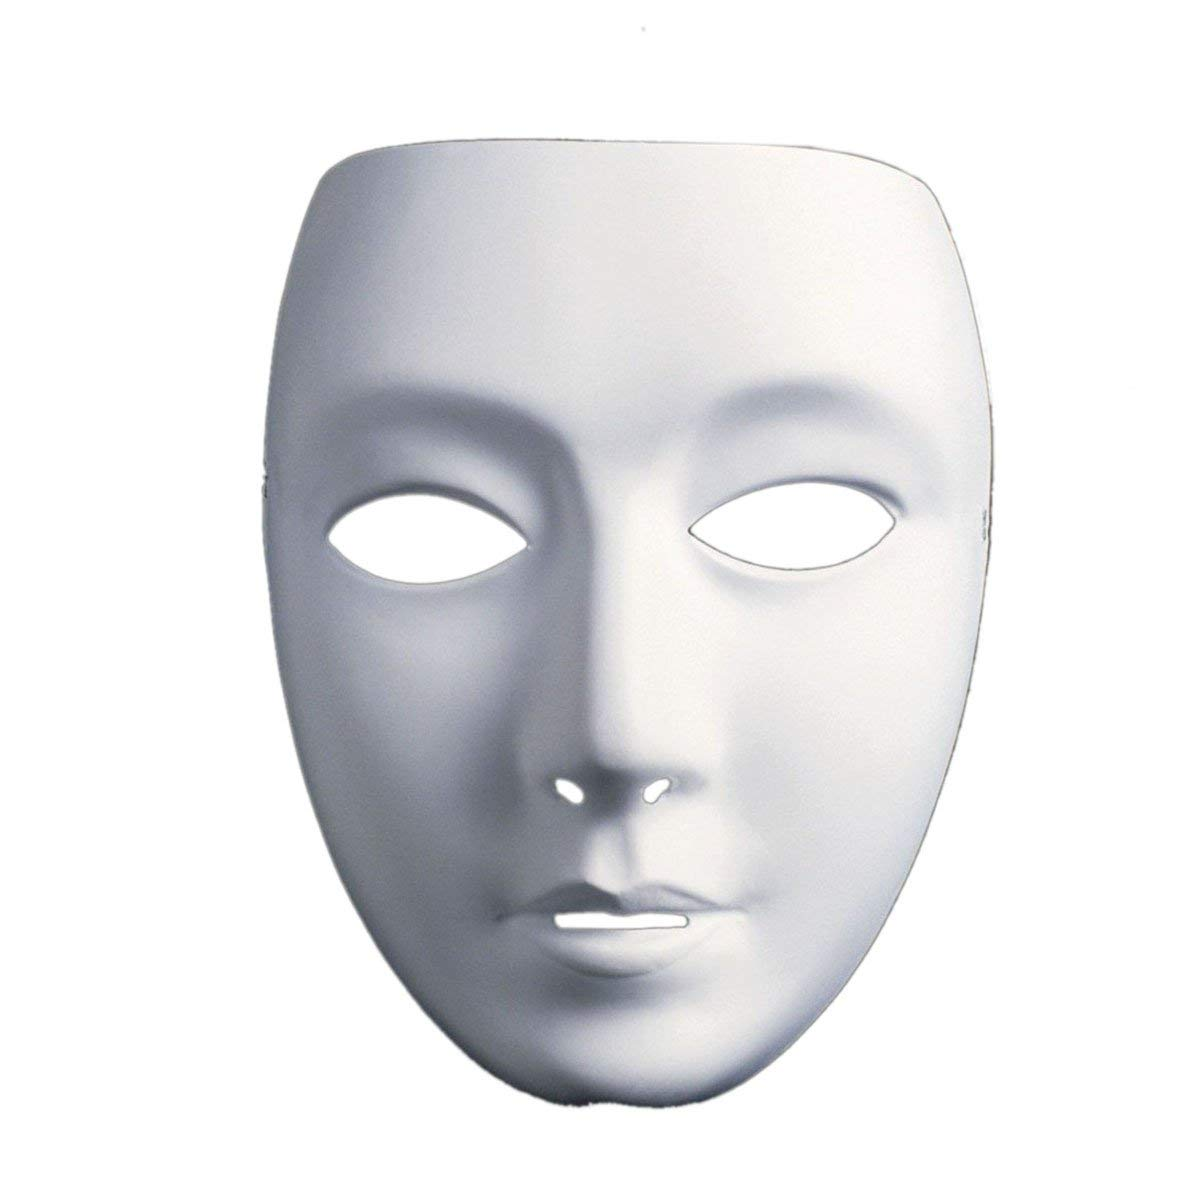 Full Face Theater Mask, DIY Masquereade Mask For Party, weddings, DIY Mardi Gras, Cosplay Costume, Anonymous Venetian Carnival Mask and Dance Paintable Paper Mask